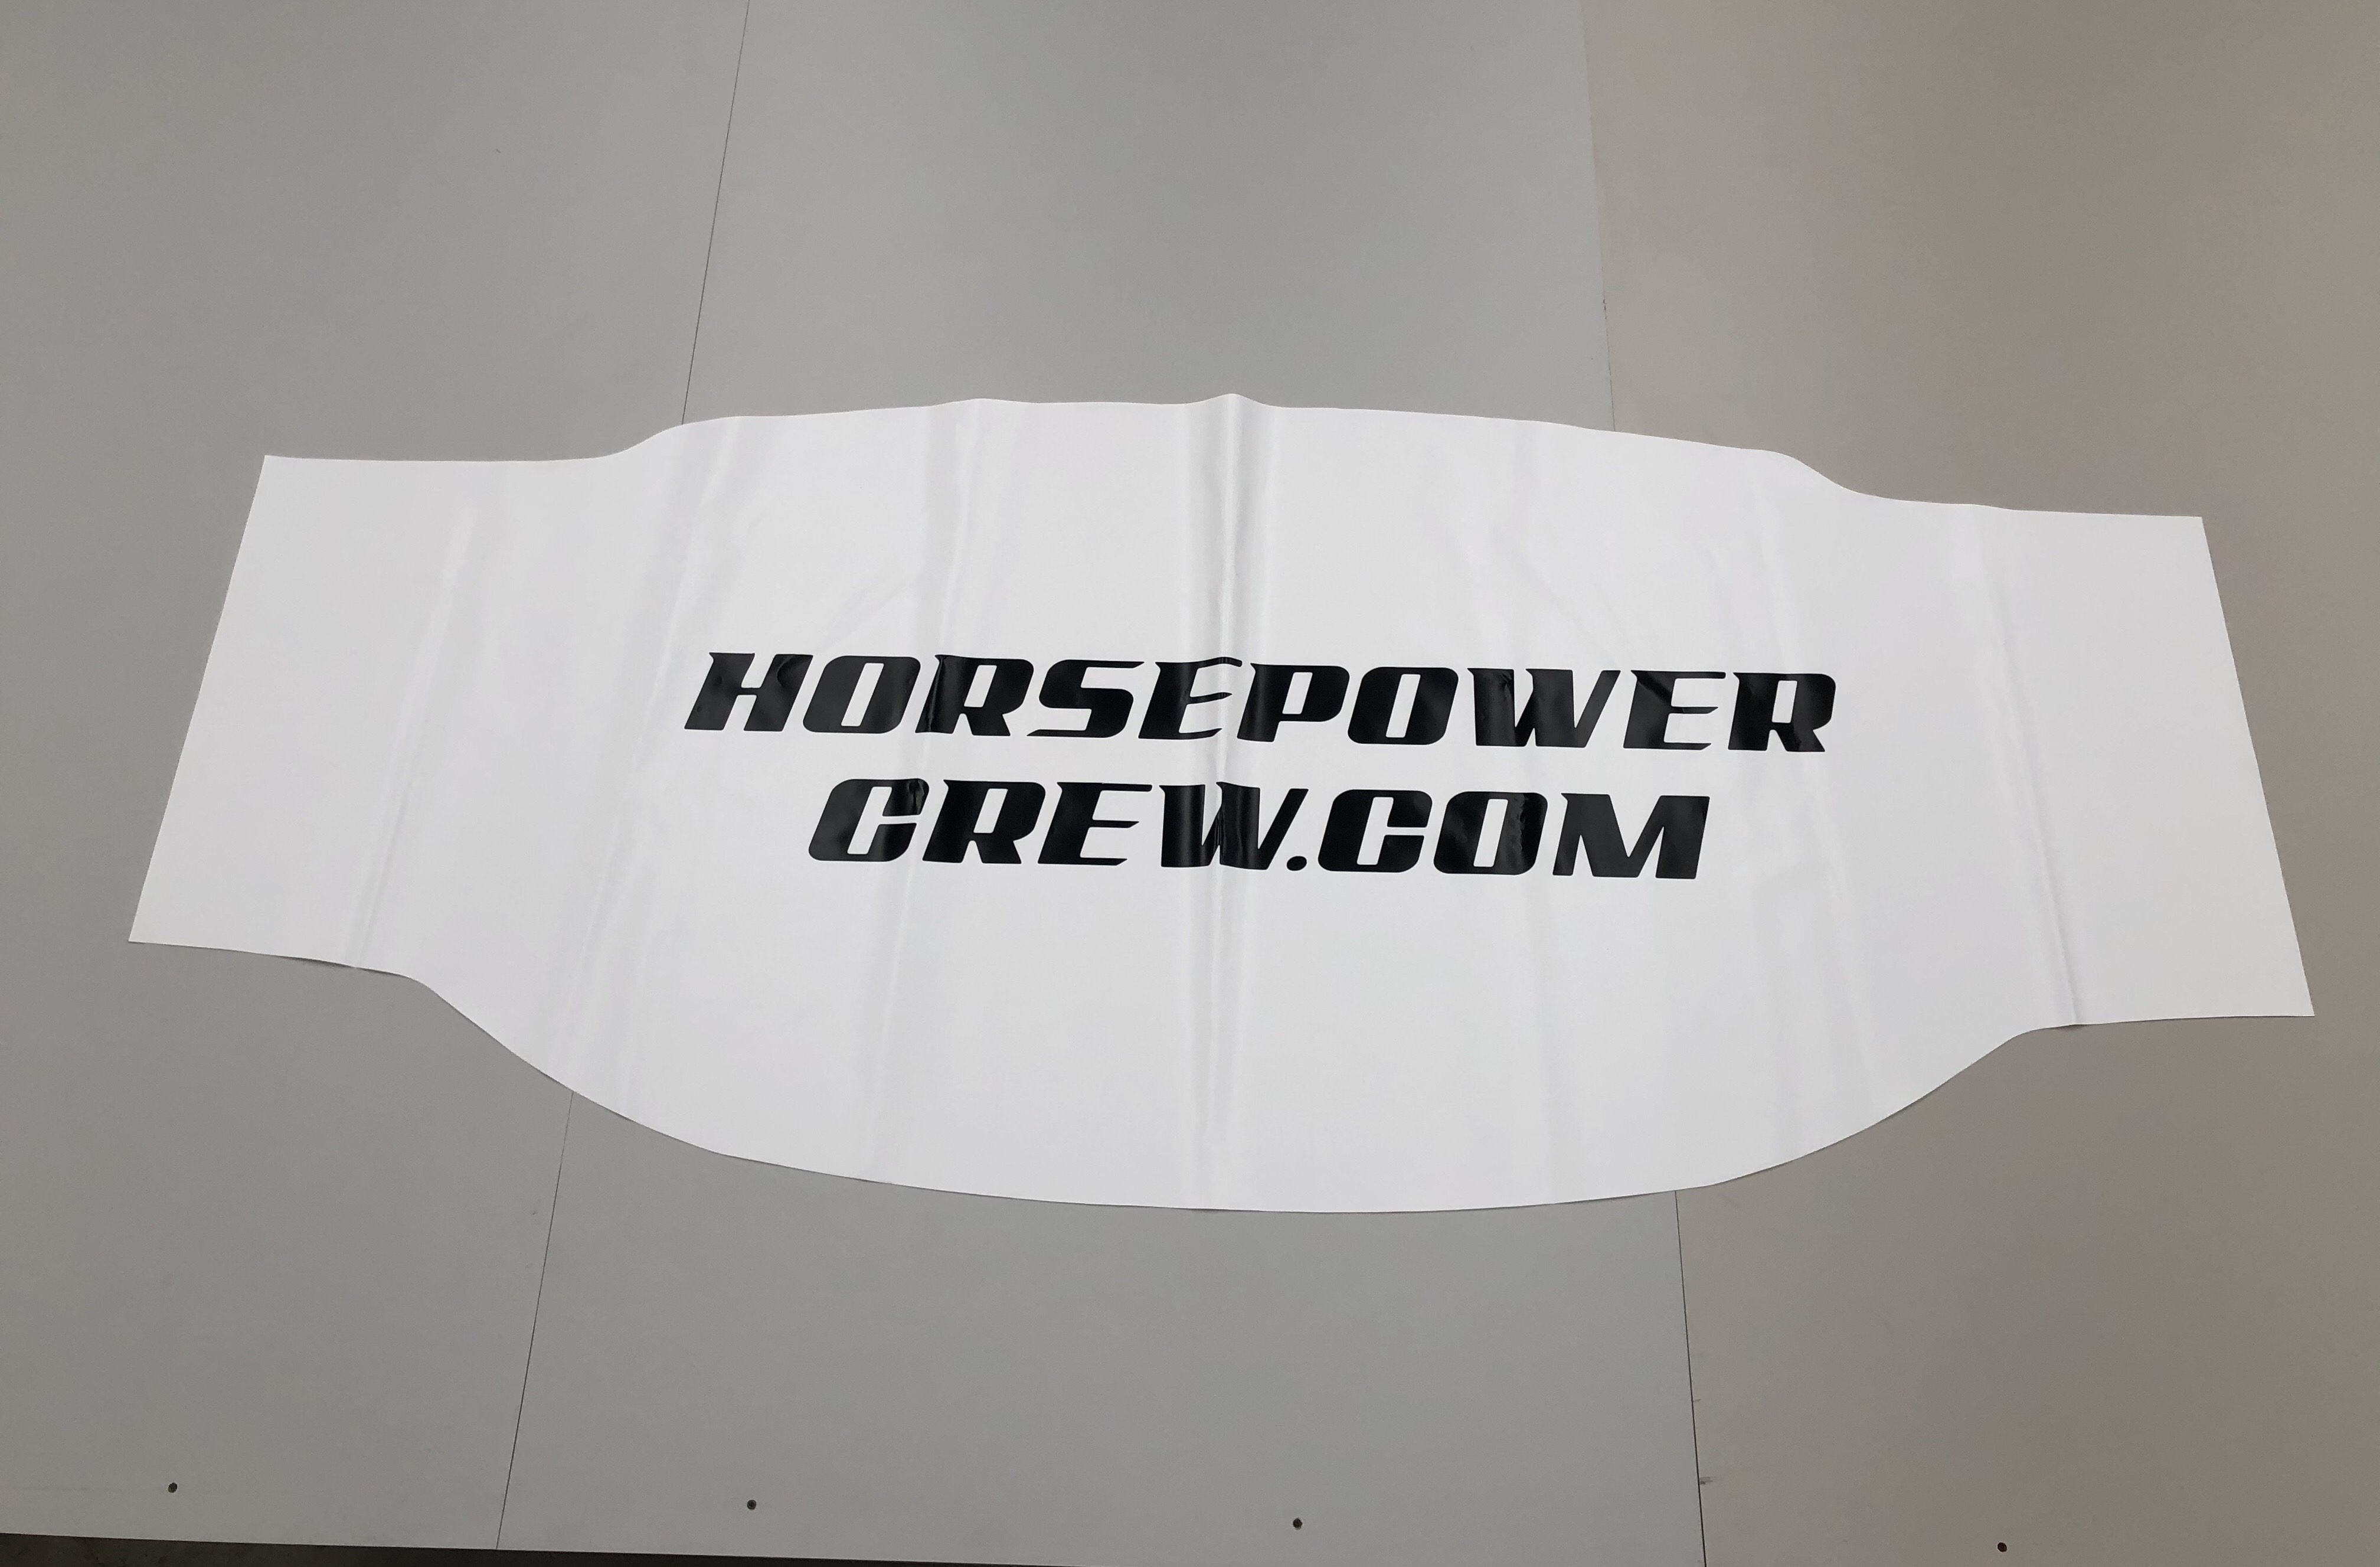 windscreen-cover-dot-com-Modern-size-white-and-Black-Example